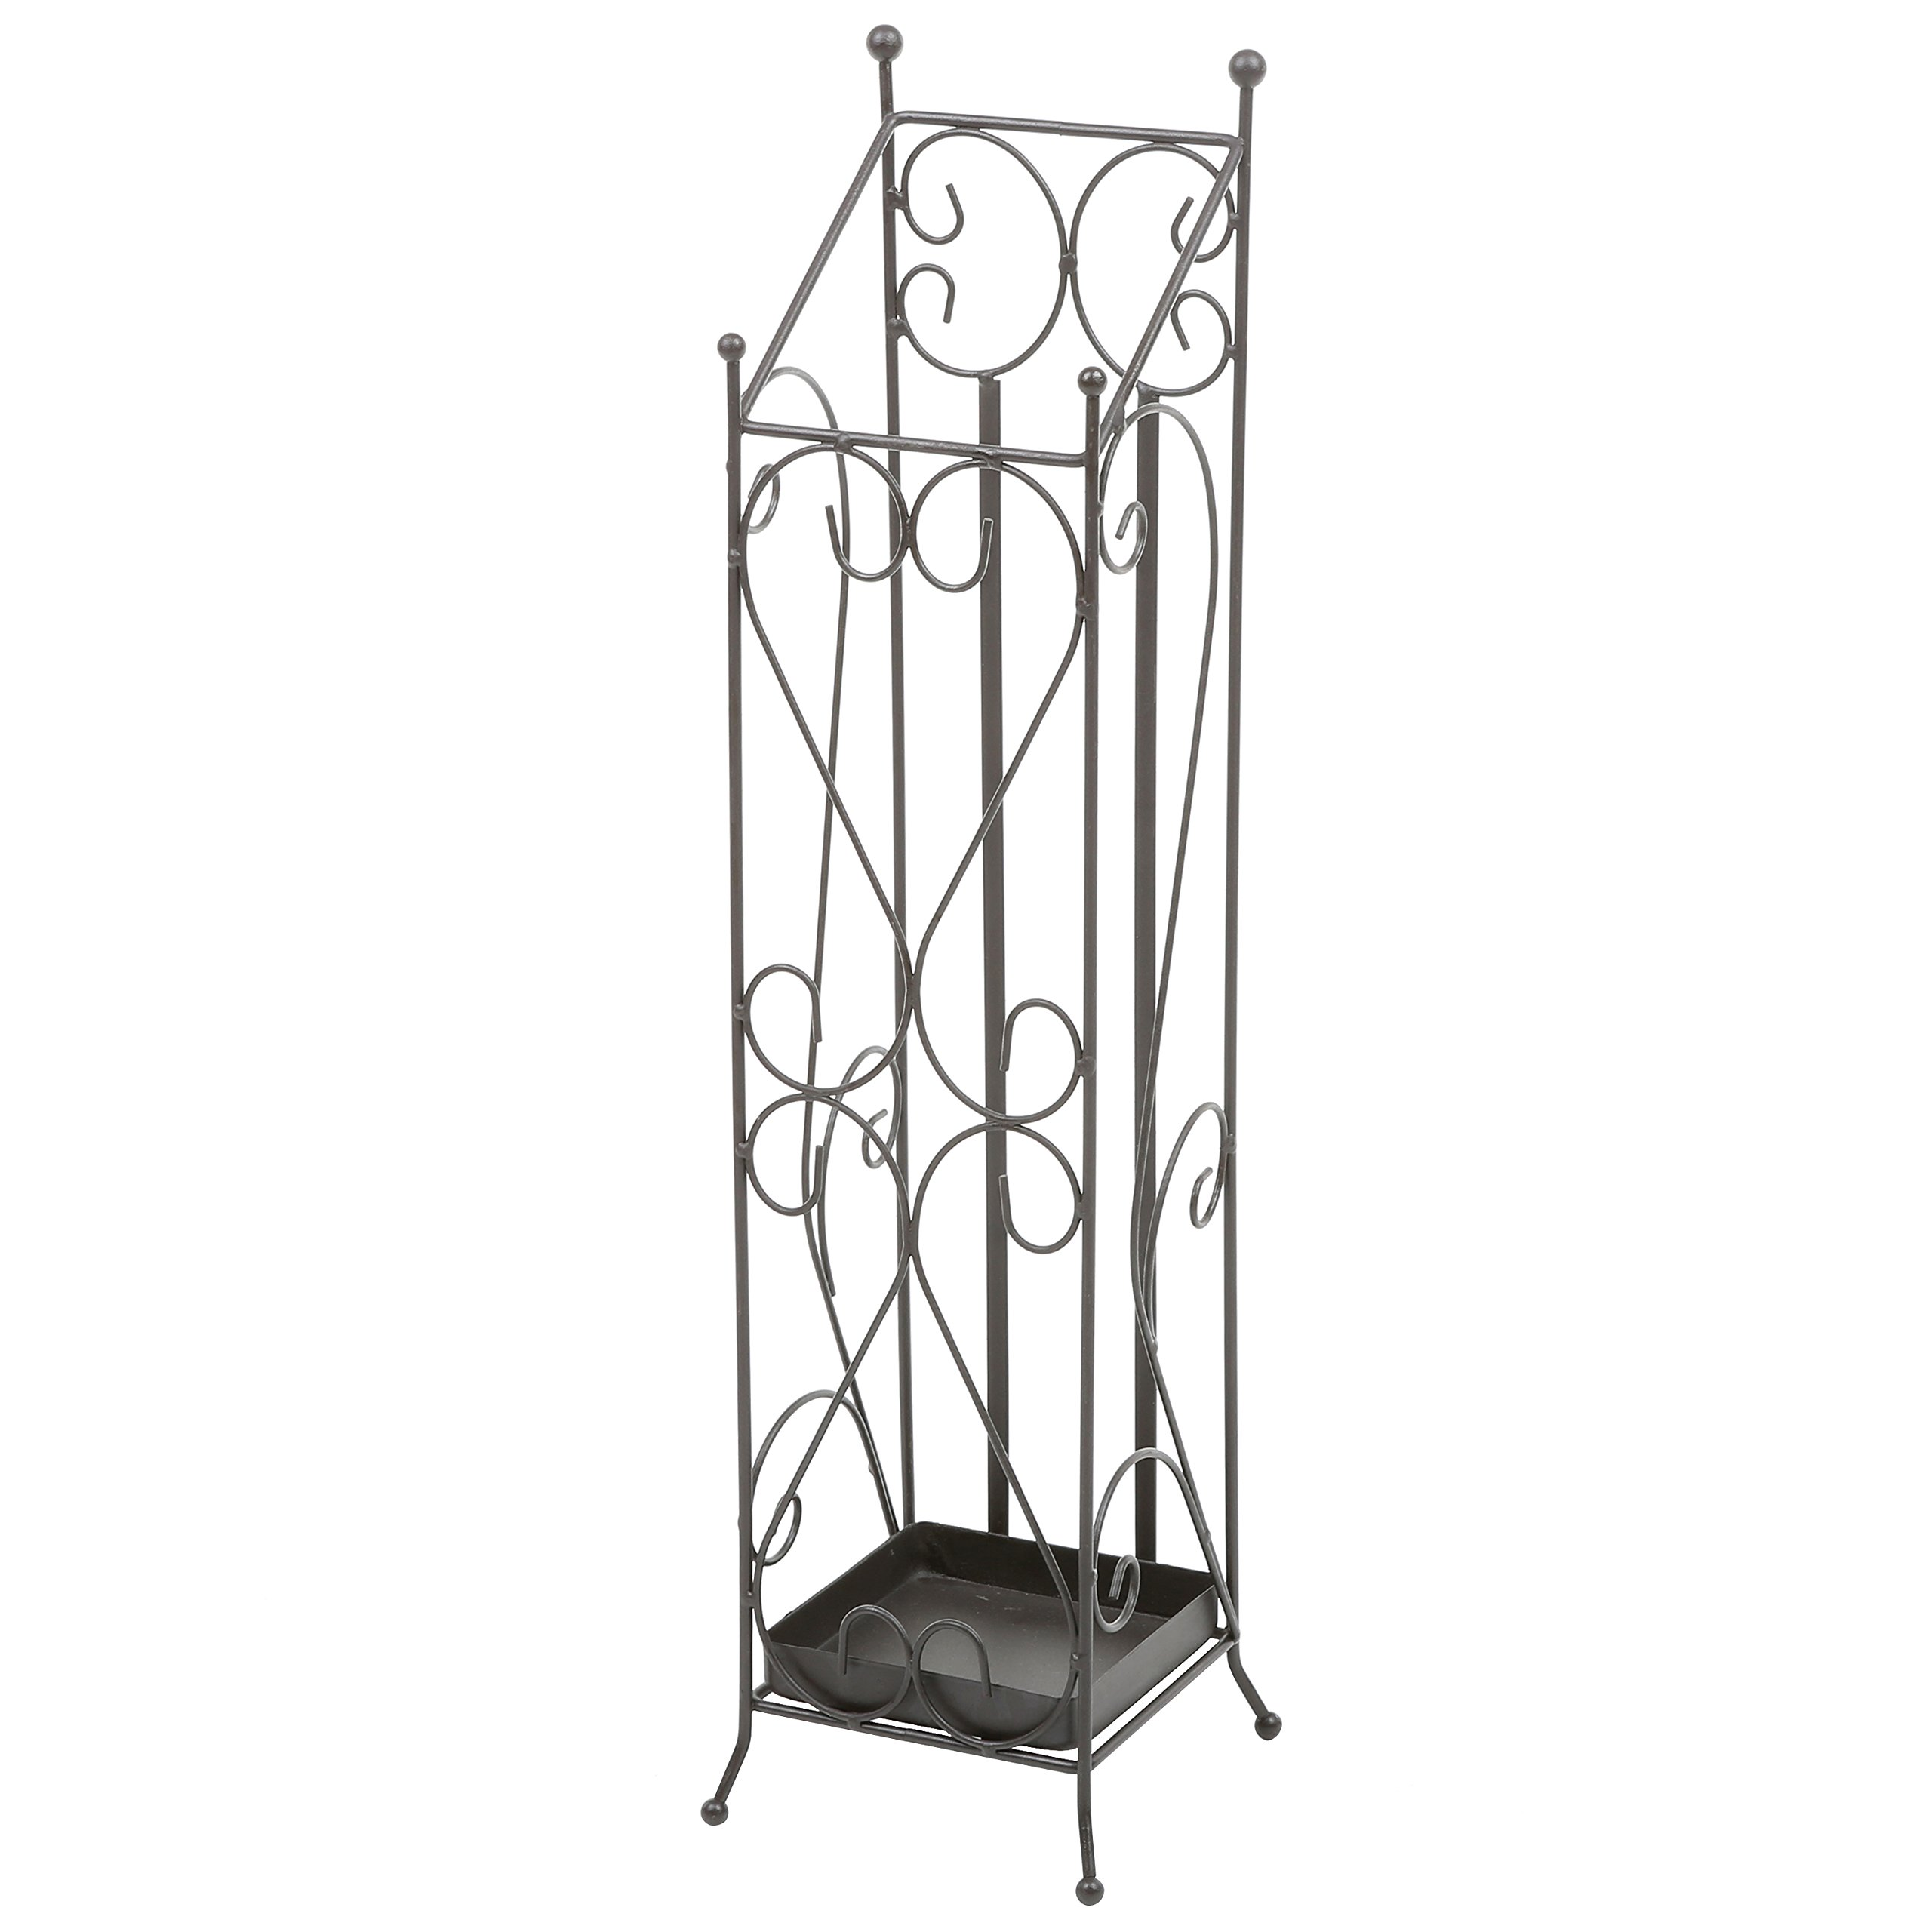 Freestanding Metal Entryway Tall Umbrella Stand, Drying Rack with Scrollwork Design, Brown